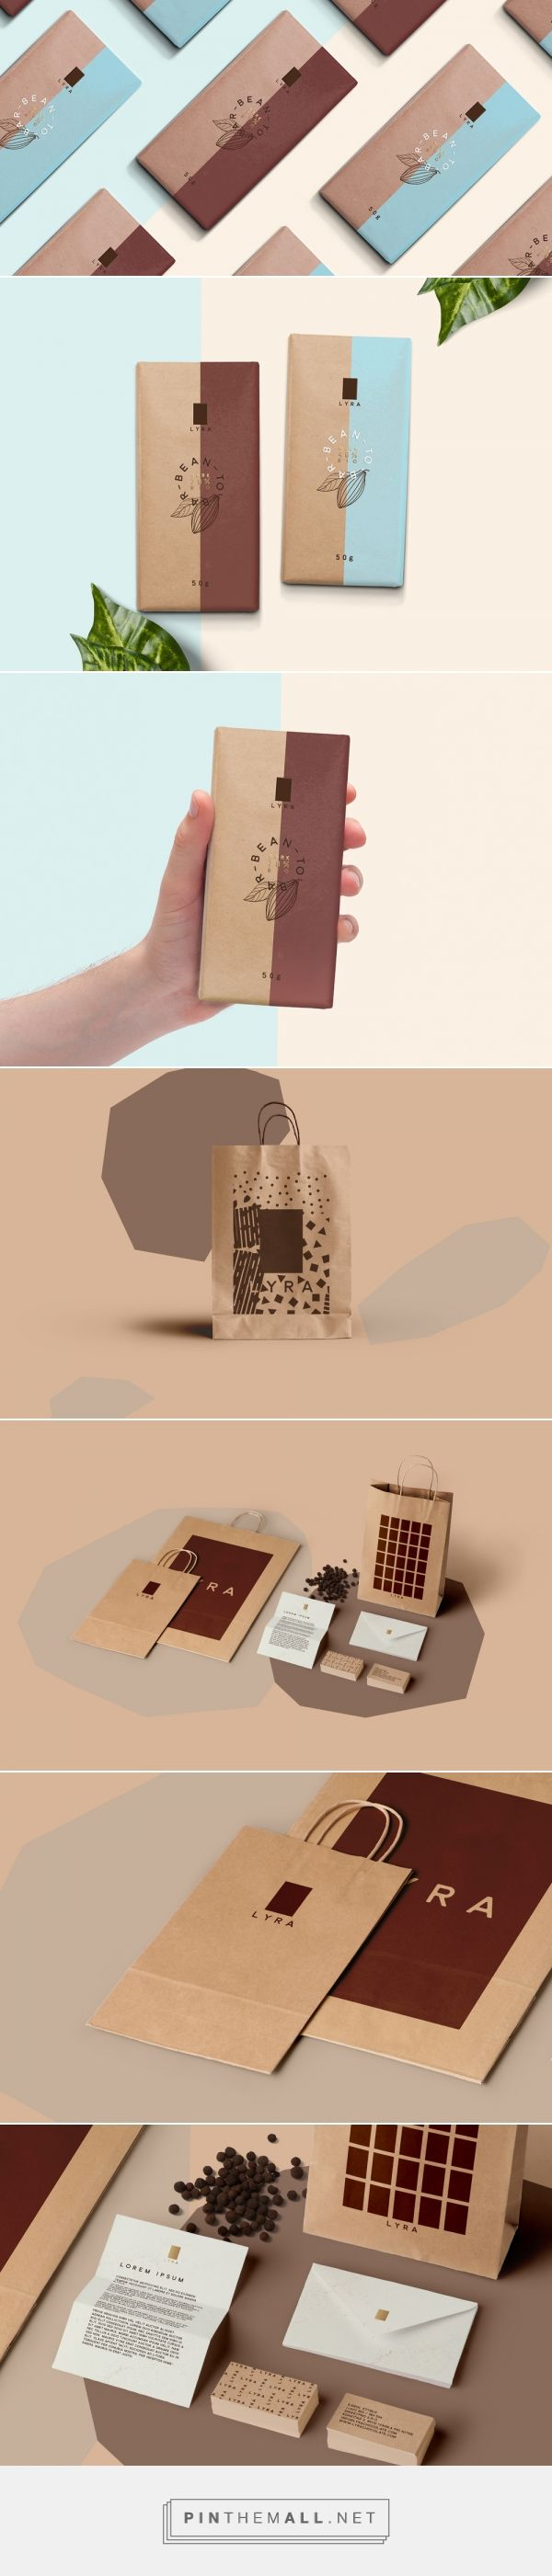 Lyra Bean-to-Bar Chocolate — The Dieline - Branding & Packaging... - a grouped images picture - Pin Them All